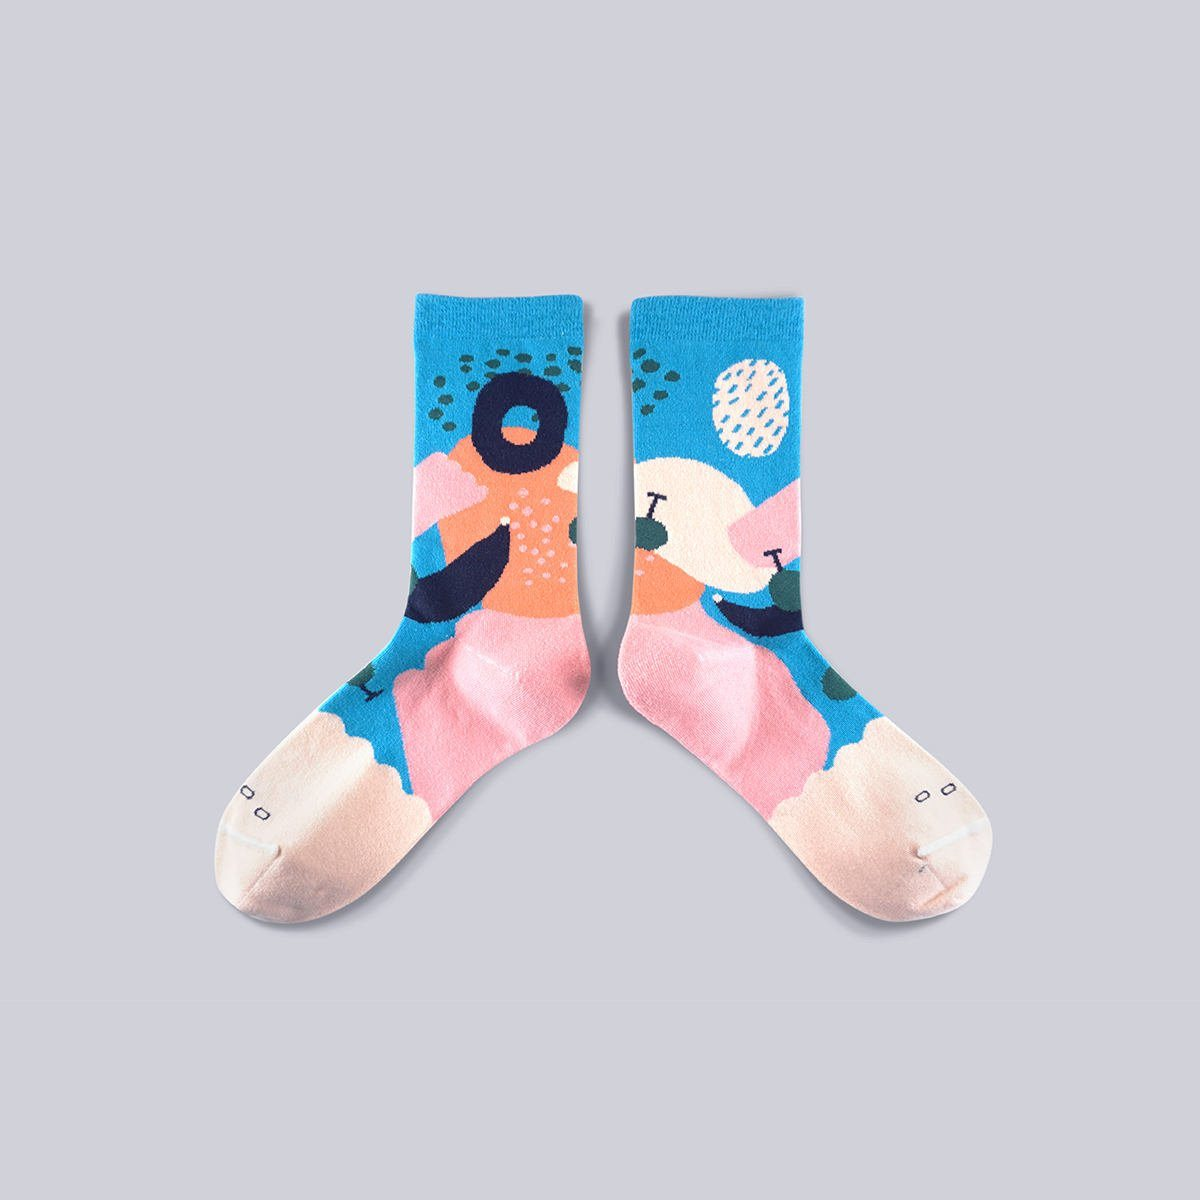 Dear, Buncho - Tropical Peach 1 socks - Socks - GoodPair - Naiise